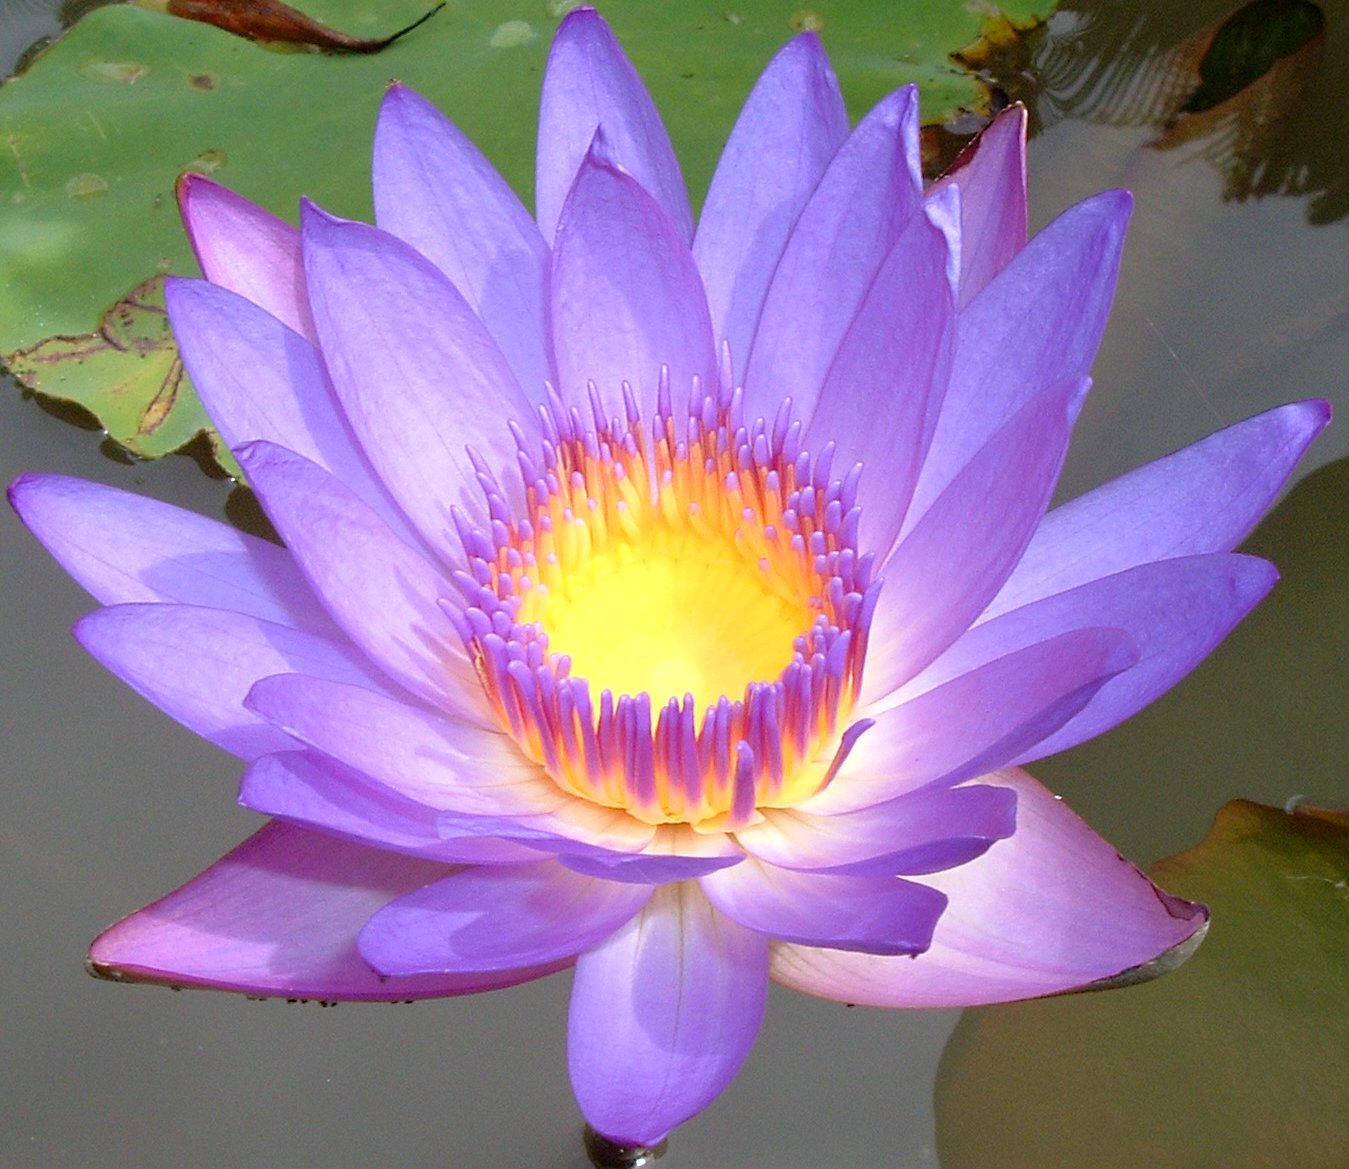 mindful inspirationsthe lotus flower  out of the mud  muck, Beautiful flower